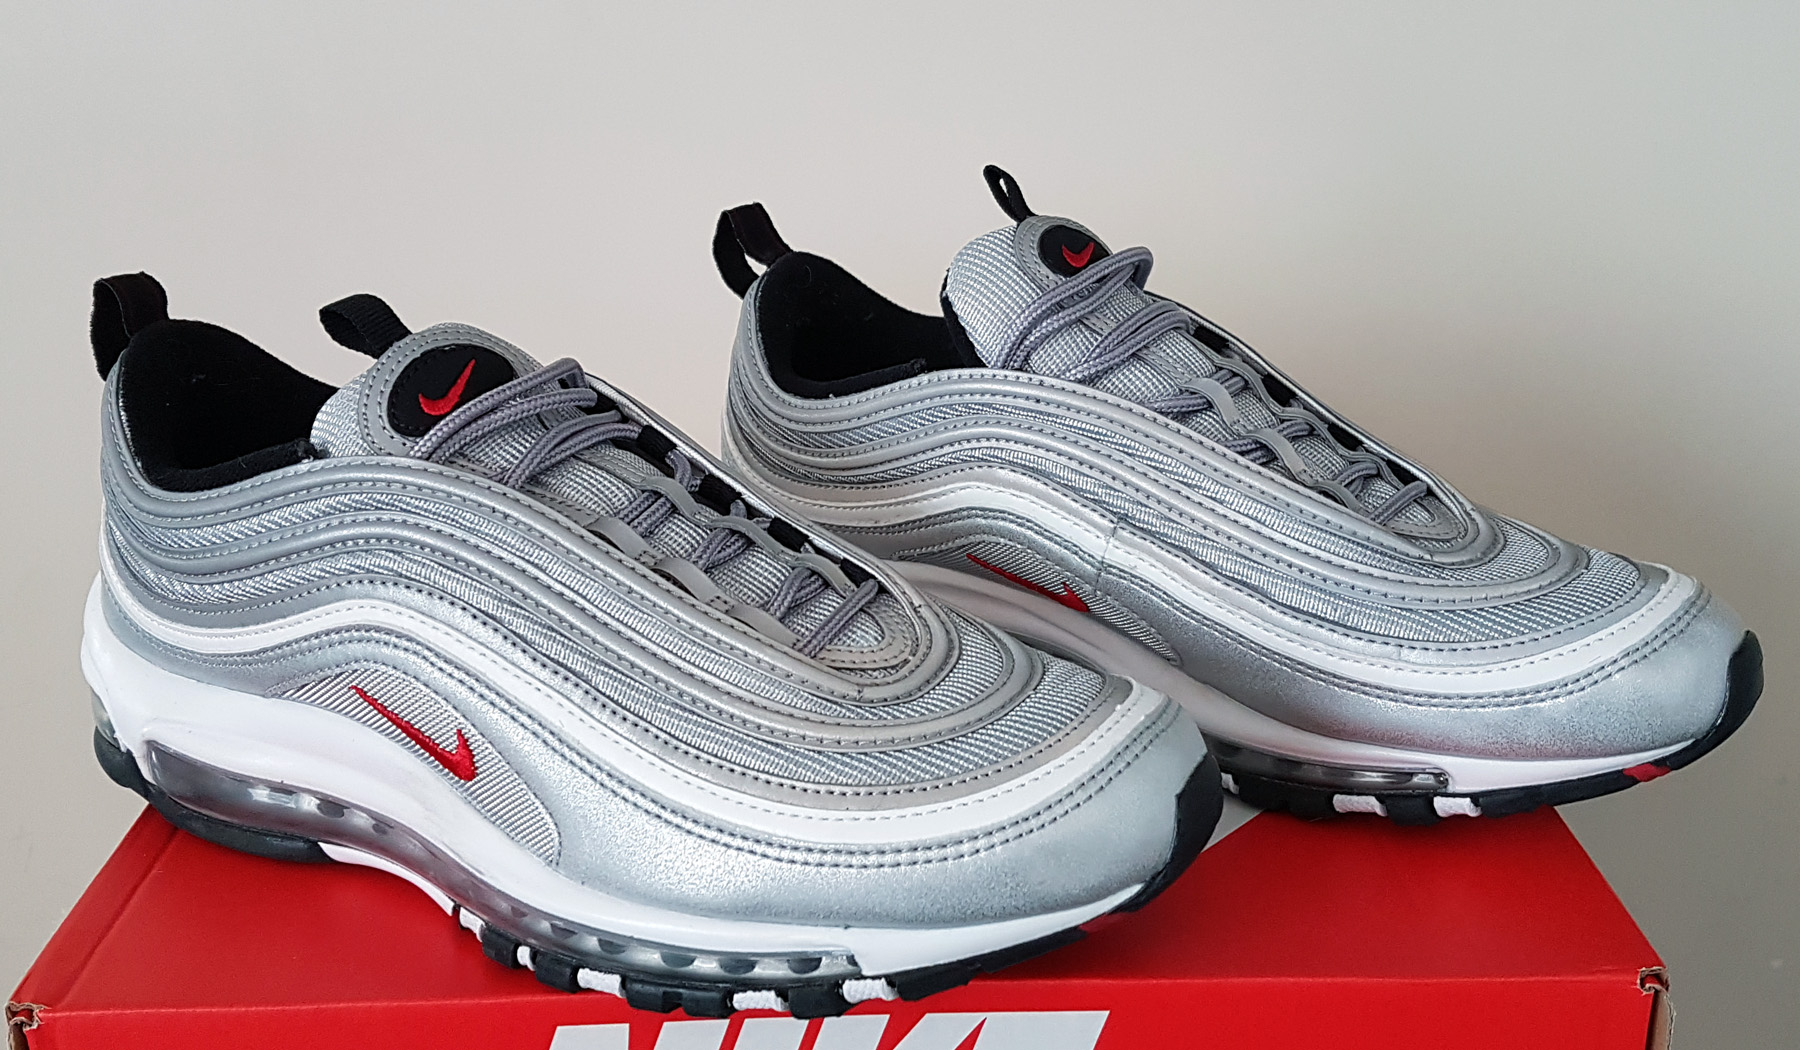 File:Air Max 97.jpg Wikimedia Commons